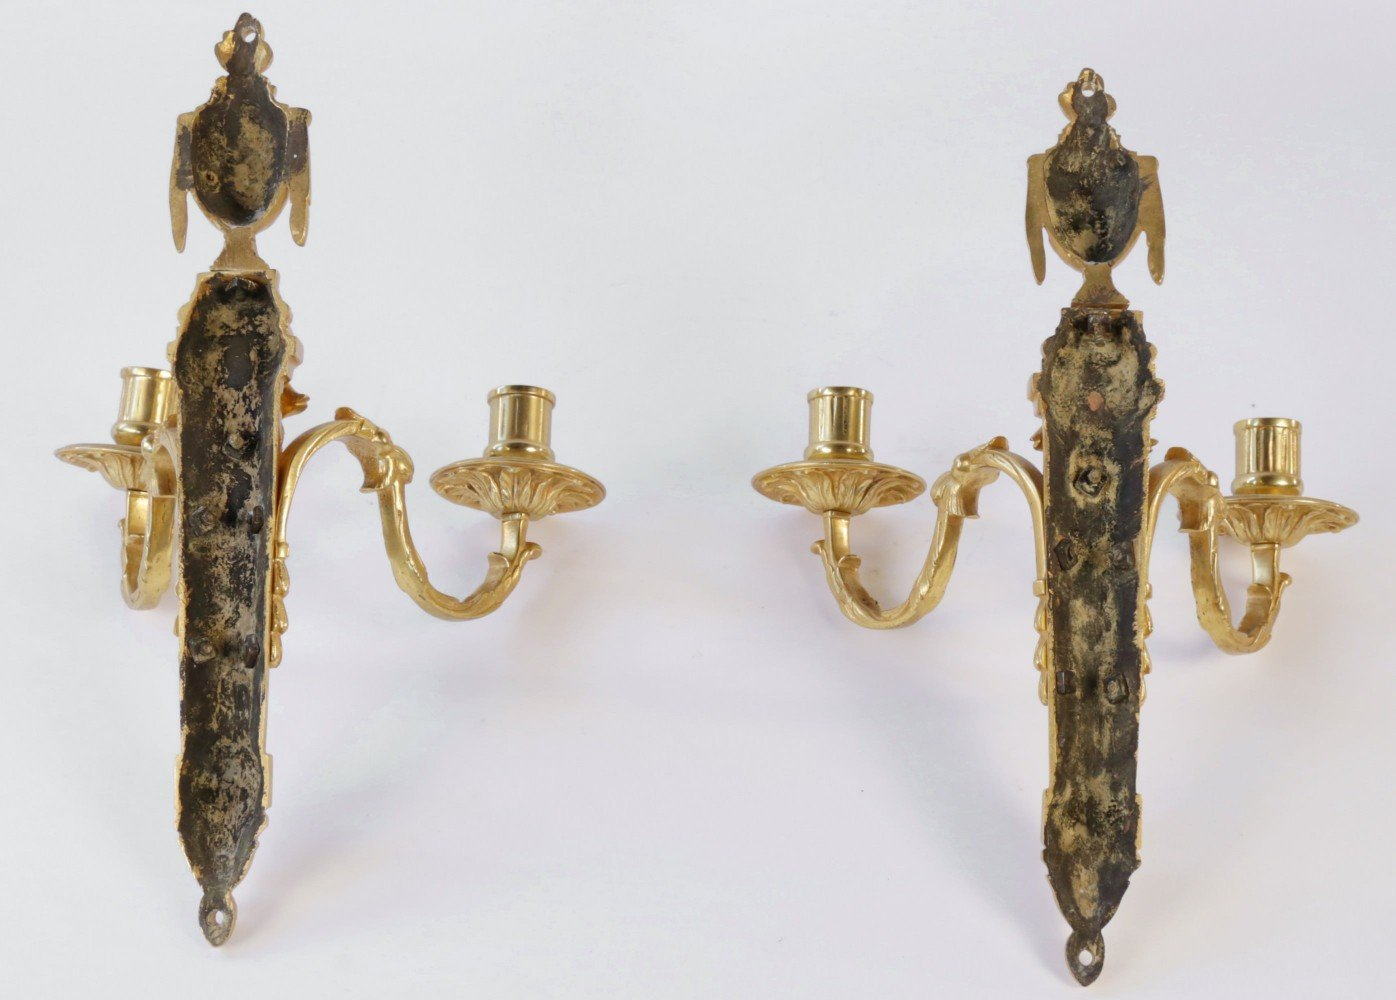 Pair Louis XVIth French Gilt Bronze Wall Sconces by 18th Century French School